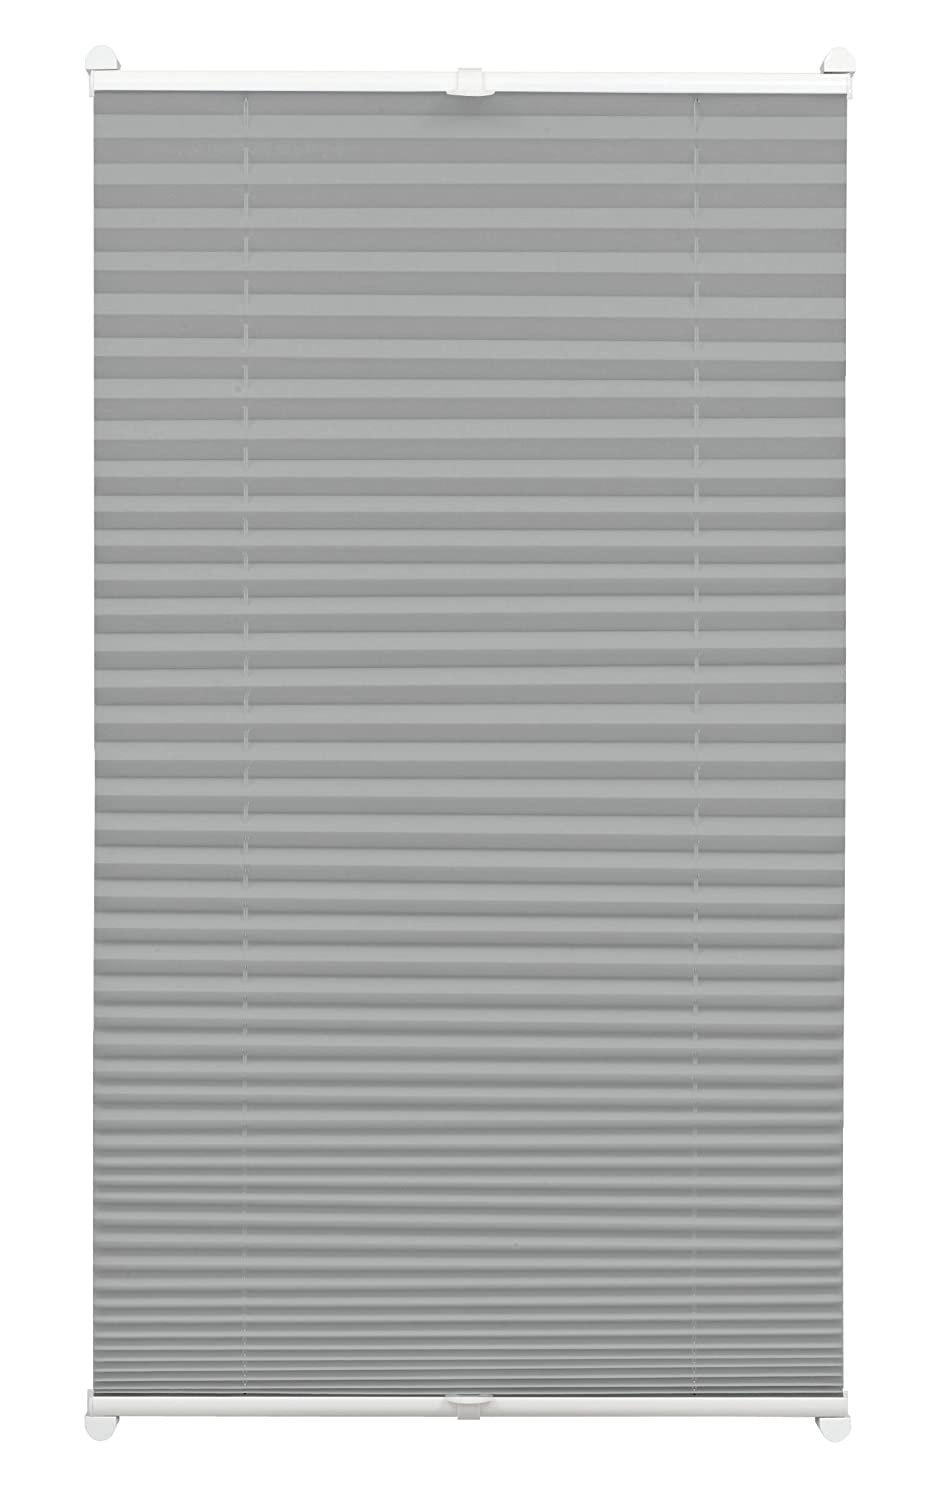 Gardinia Pleated Blind for Clamping, Opaque Folding Blind, Mounting Kit Included, EASYFIX Pleated Blind with Two Operating Rails, Bordeaux Red, 40 x 130 cm (WxH) 33724